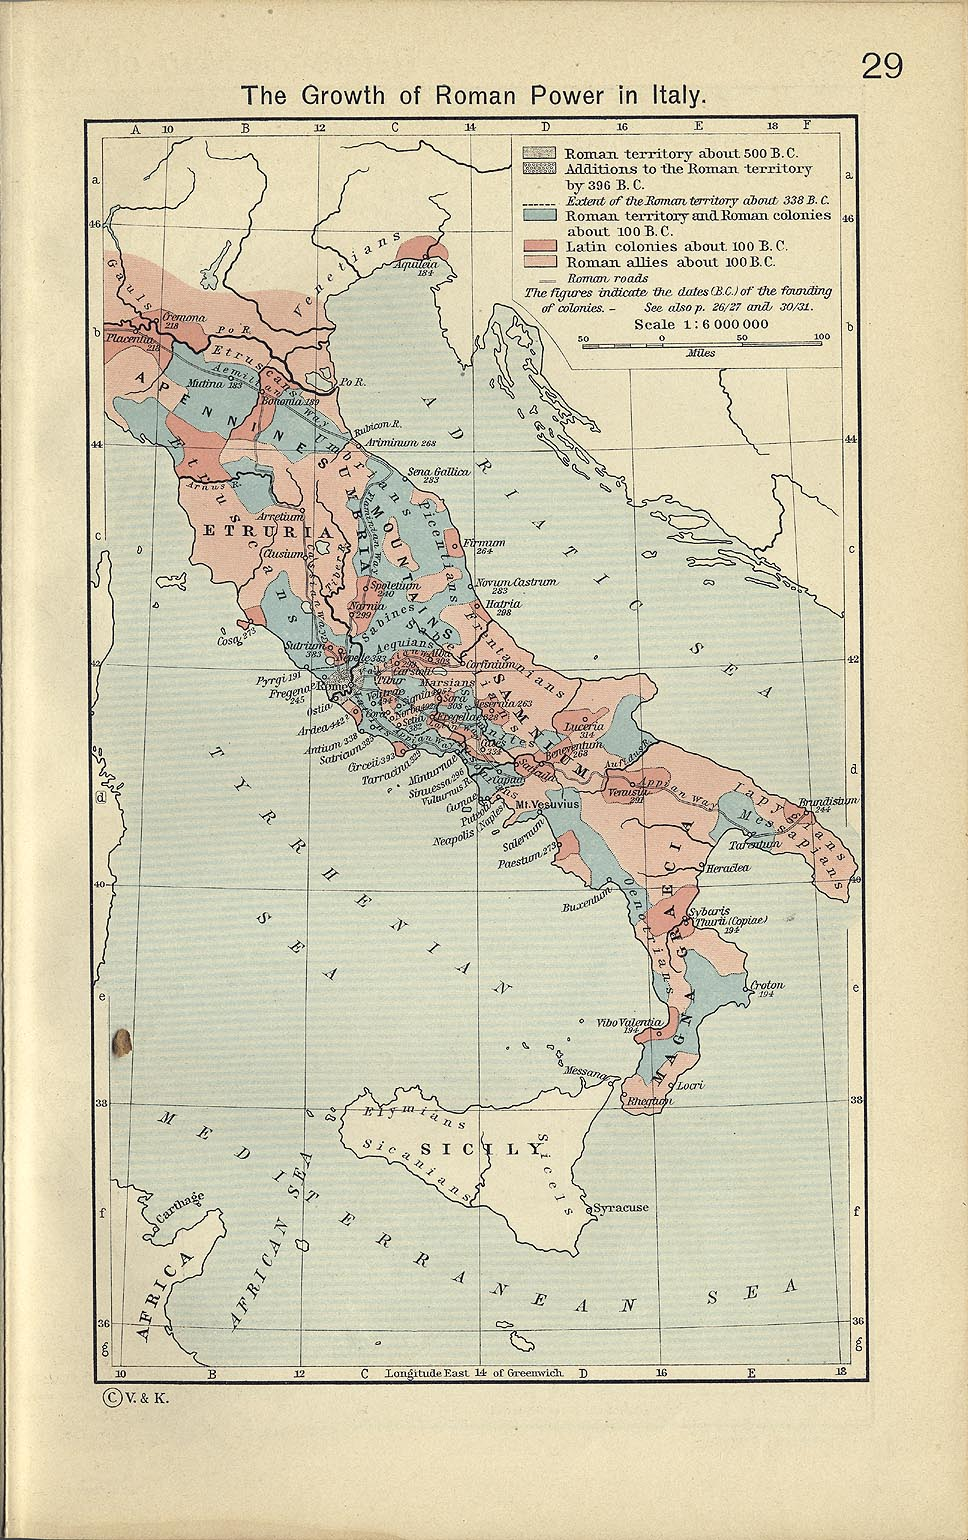 Map of the Growth of Roman Power in Italy